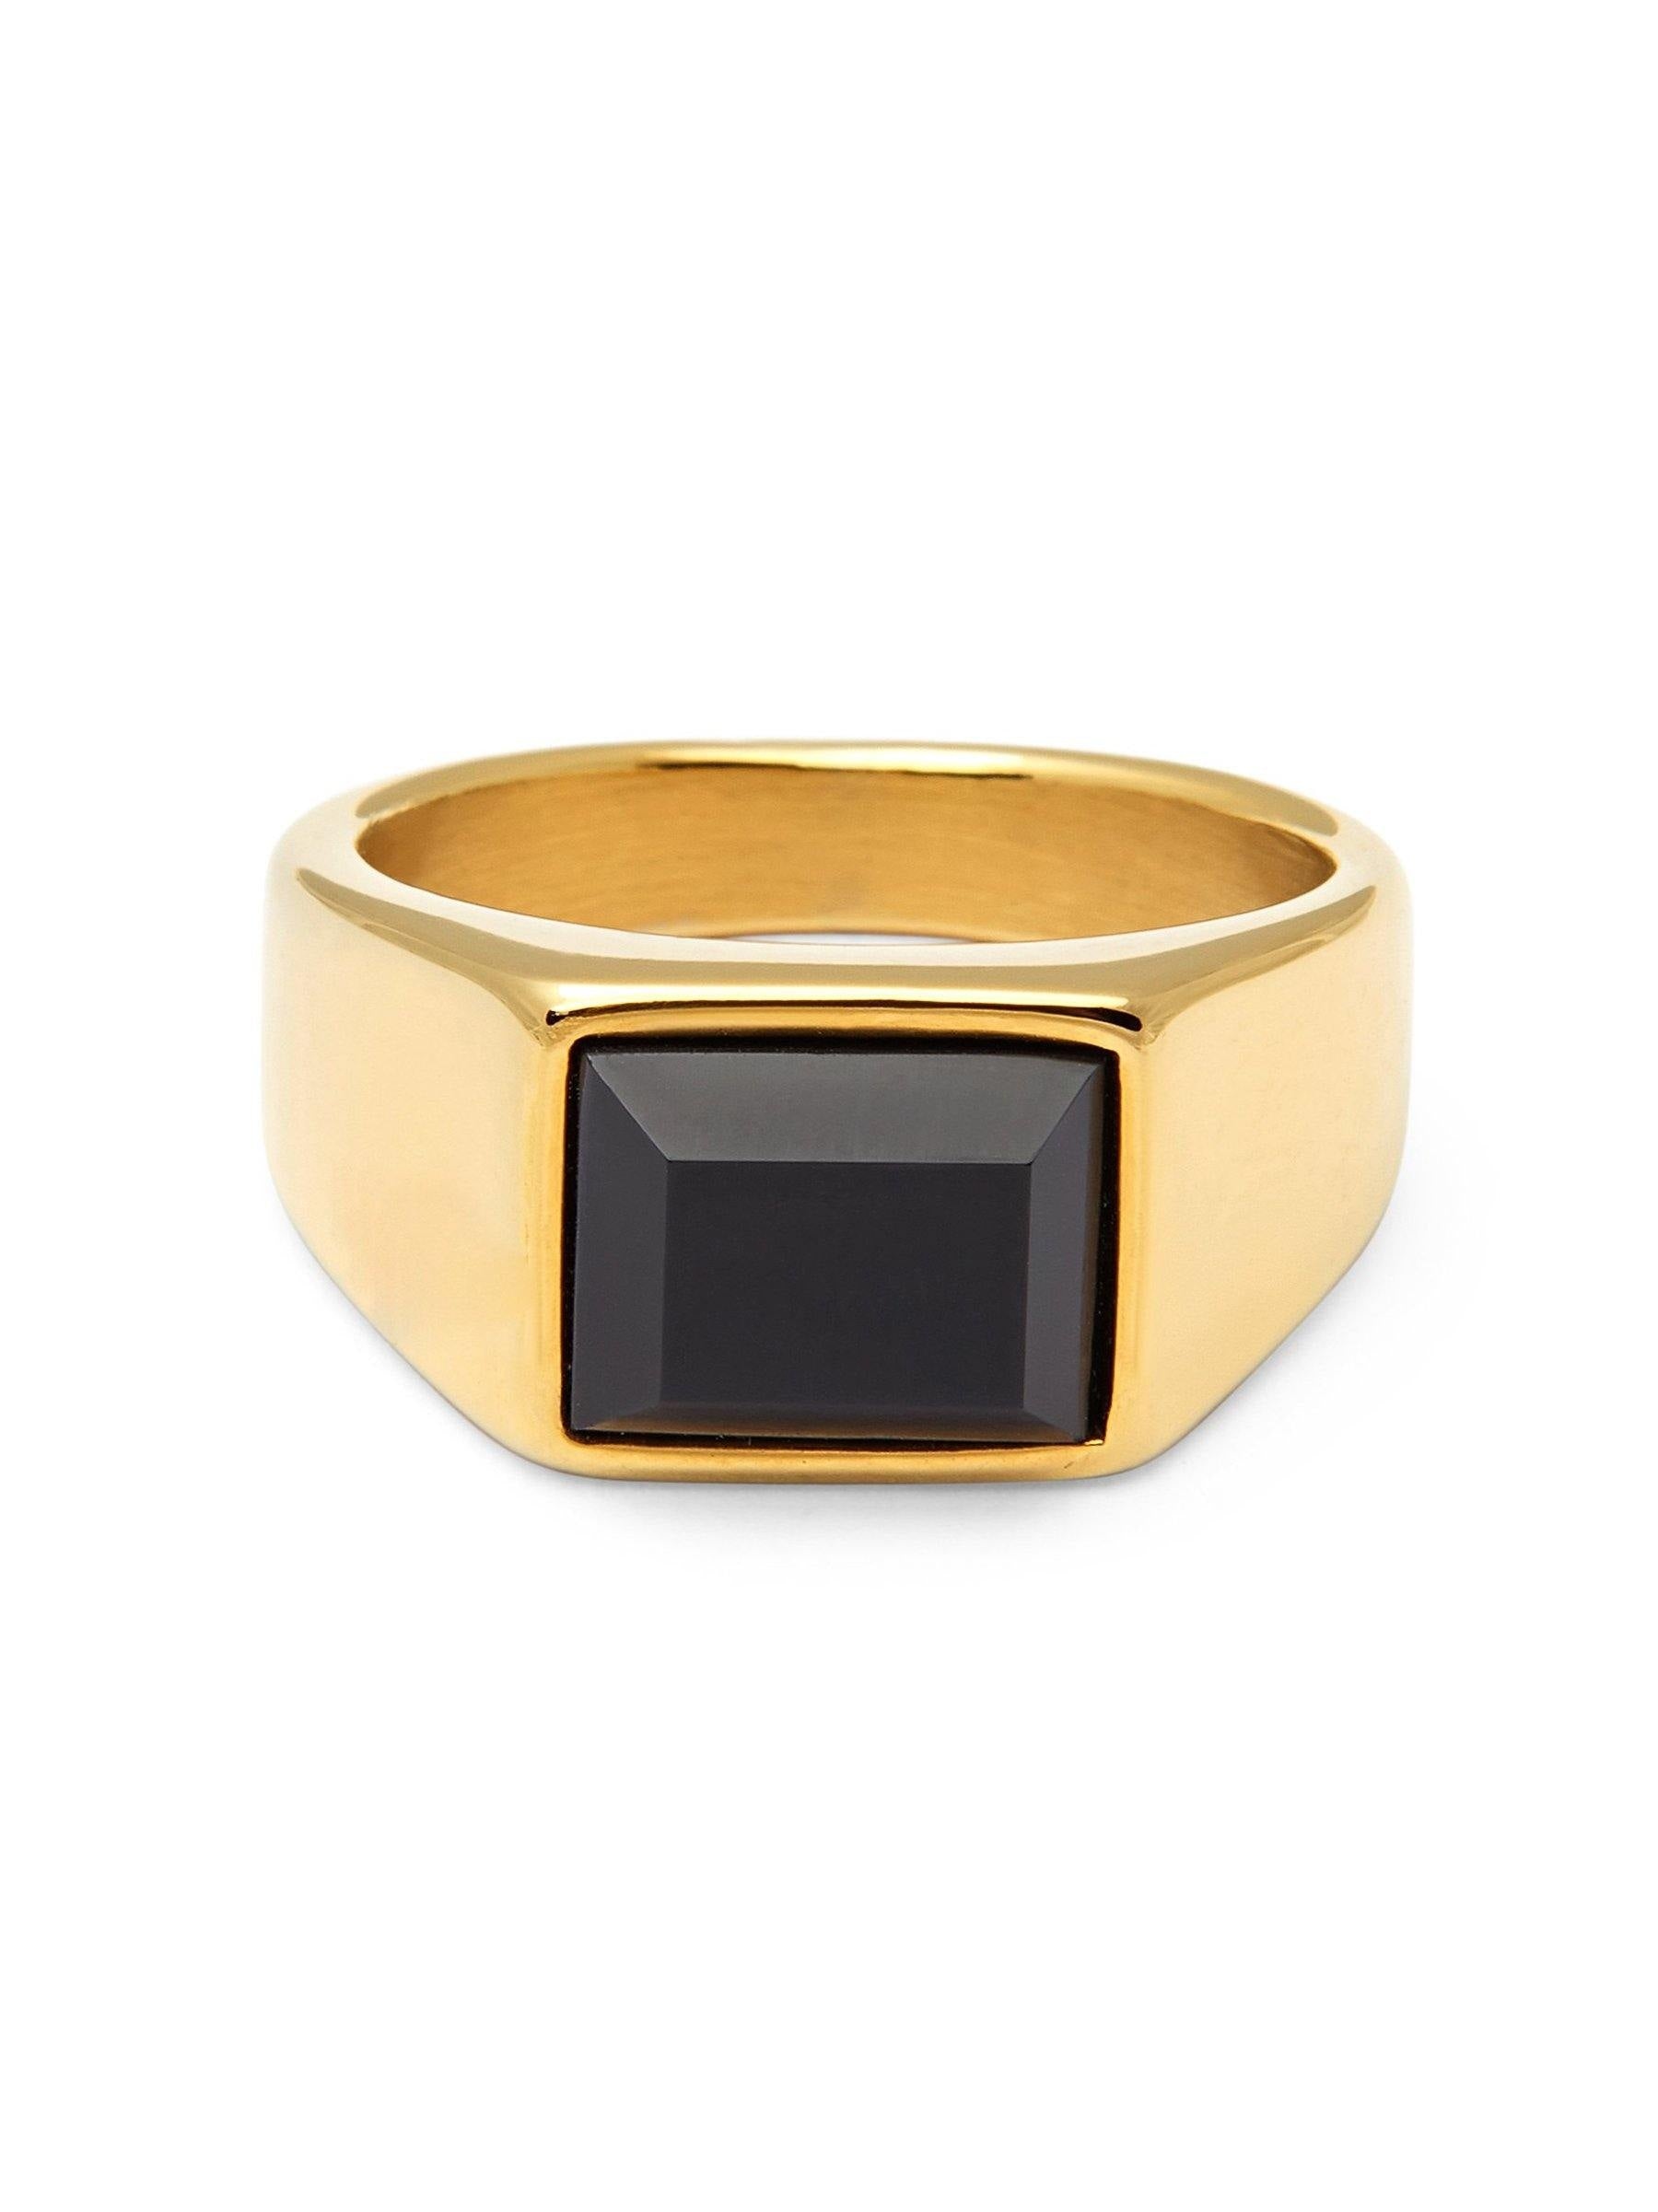 Men's Gold Squared Signet Ring with Onyx - Nialaya Jewelry